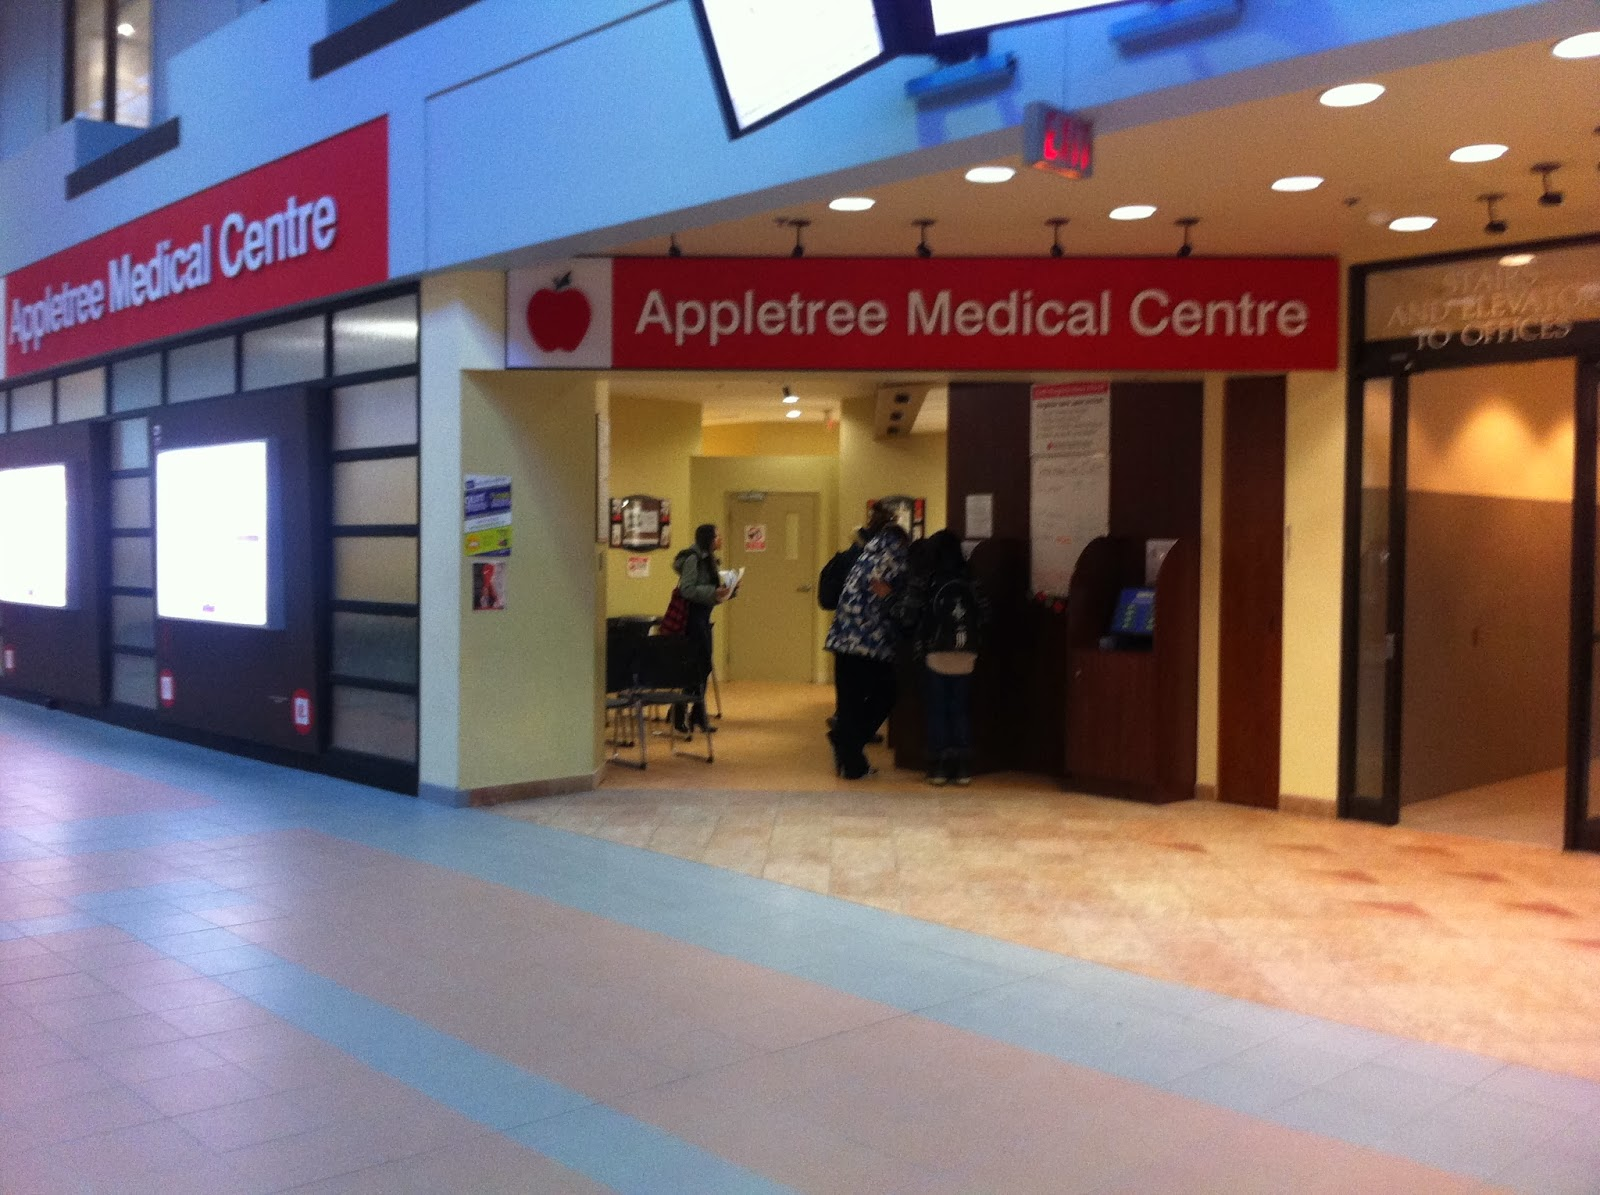 This image shows the Appletree medical center located in York lanes of York university